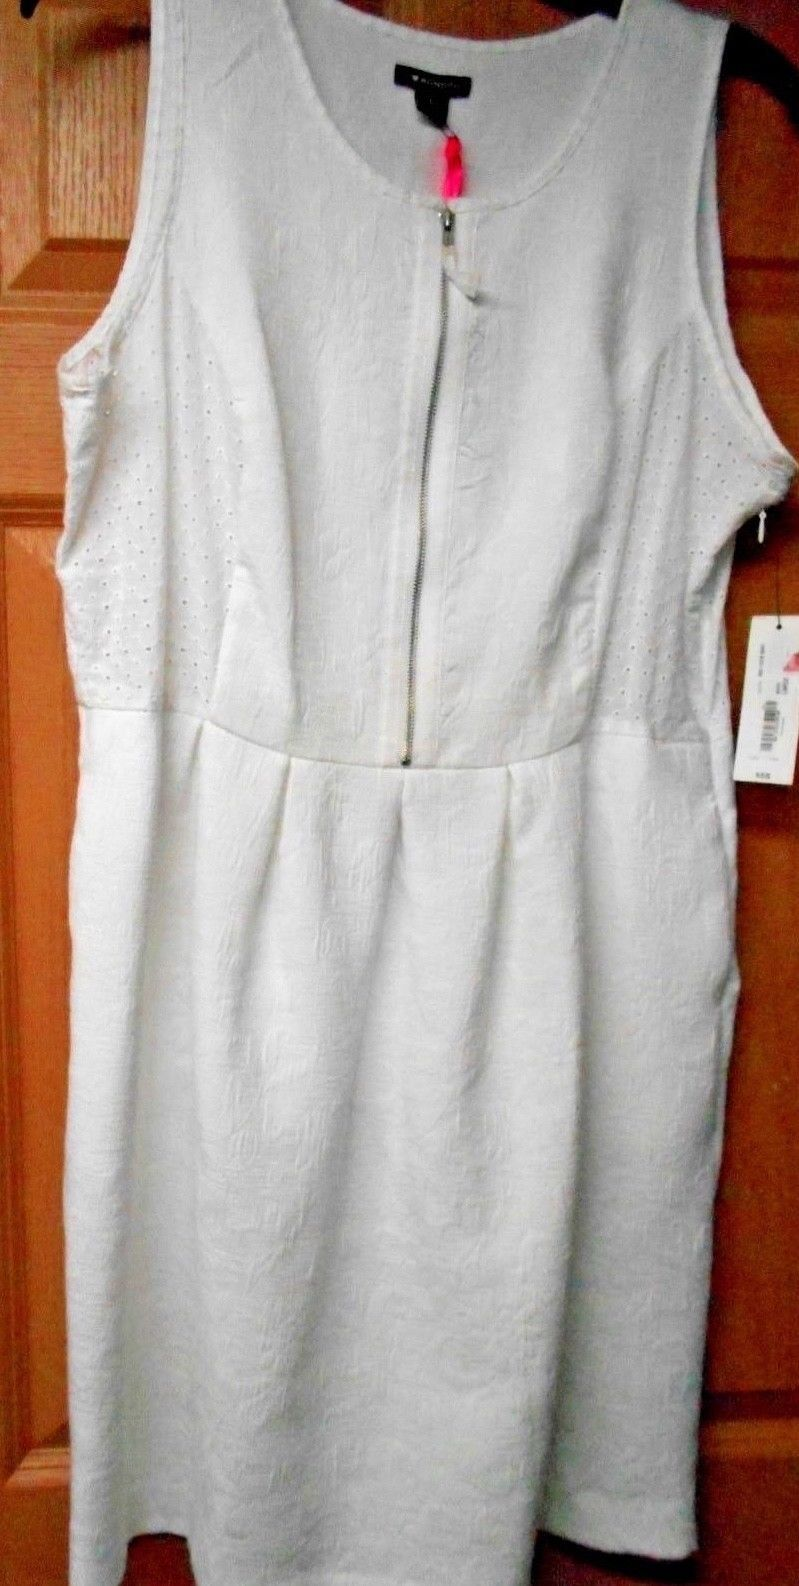 Primary image for New I Love Ronson Womens Sz L white Sleeveless Eyelet Dress Retails $58